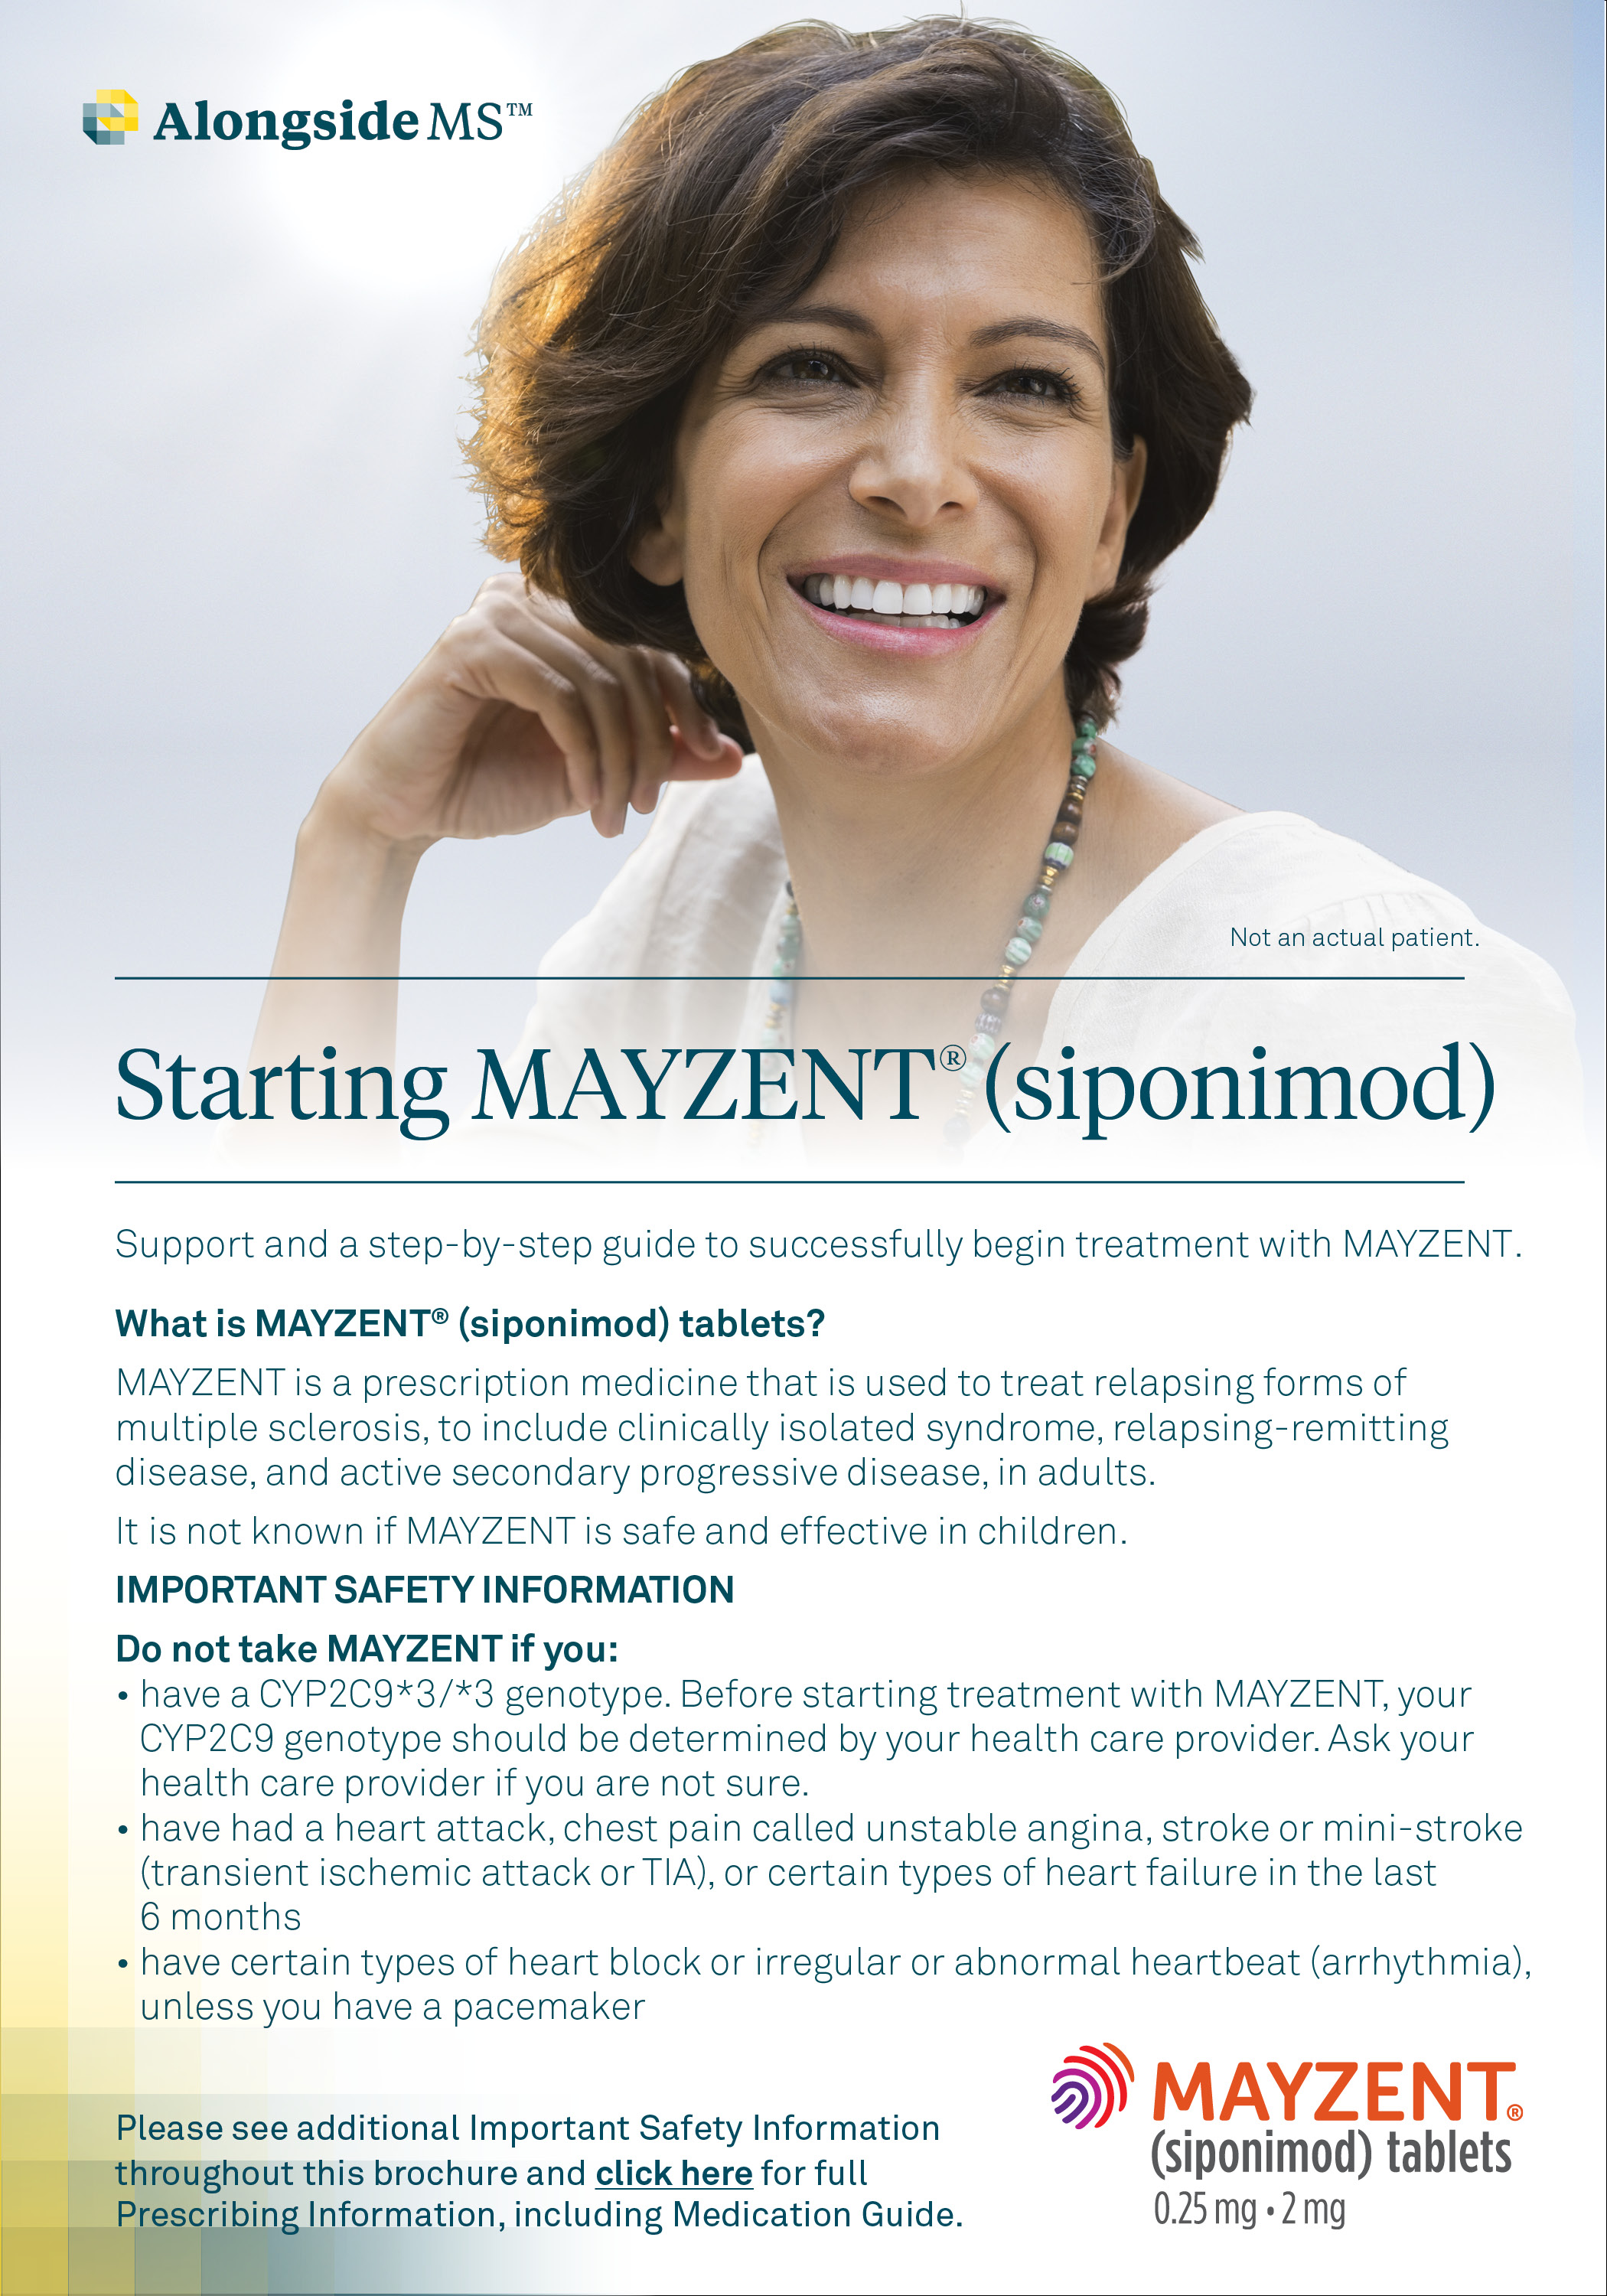 Getting Started on Mayzent Brochure Download